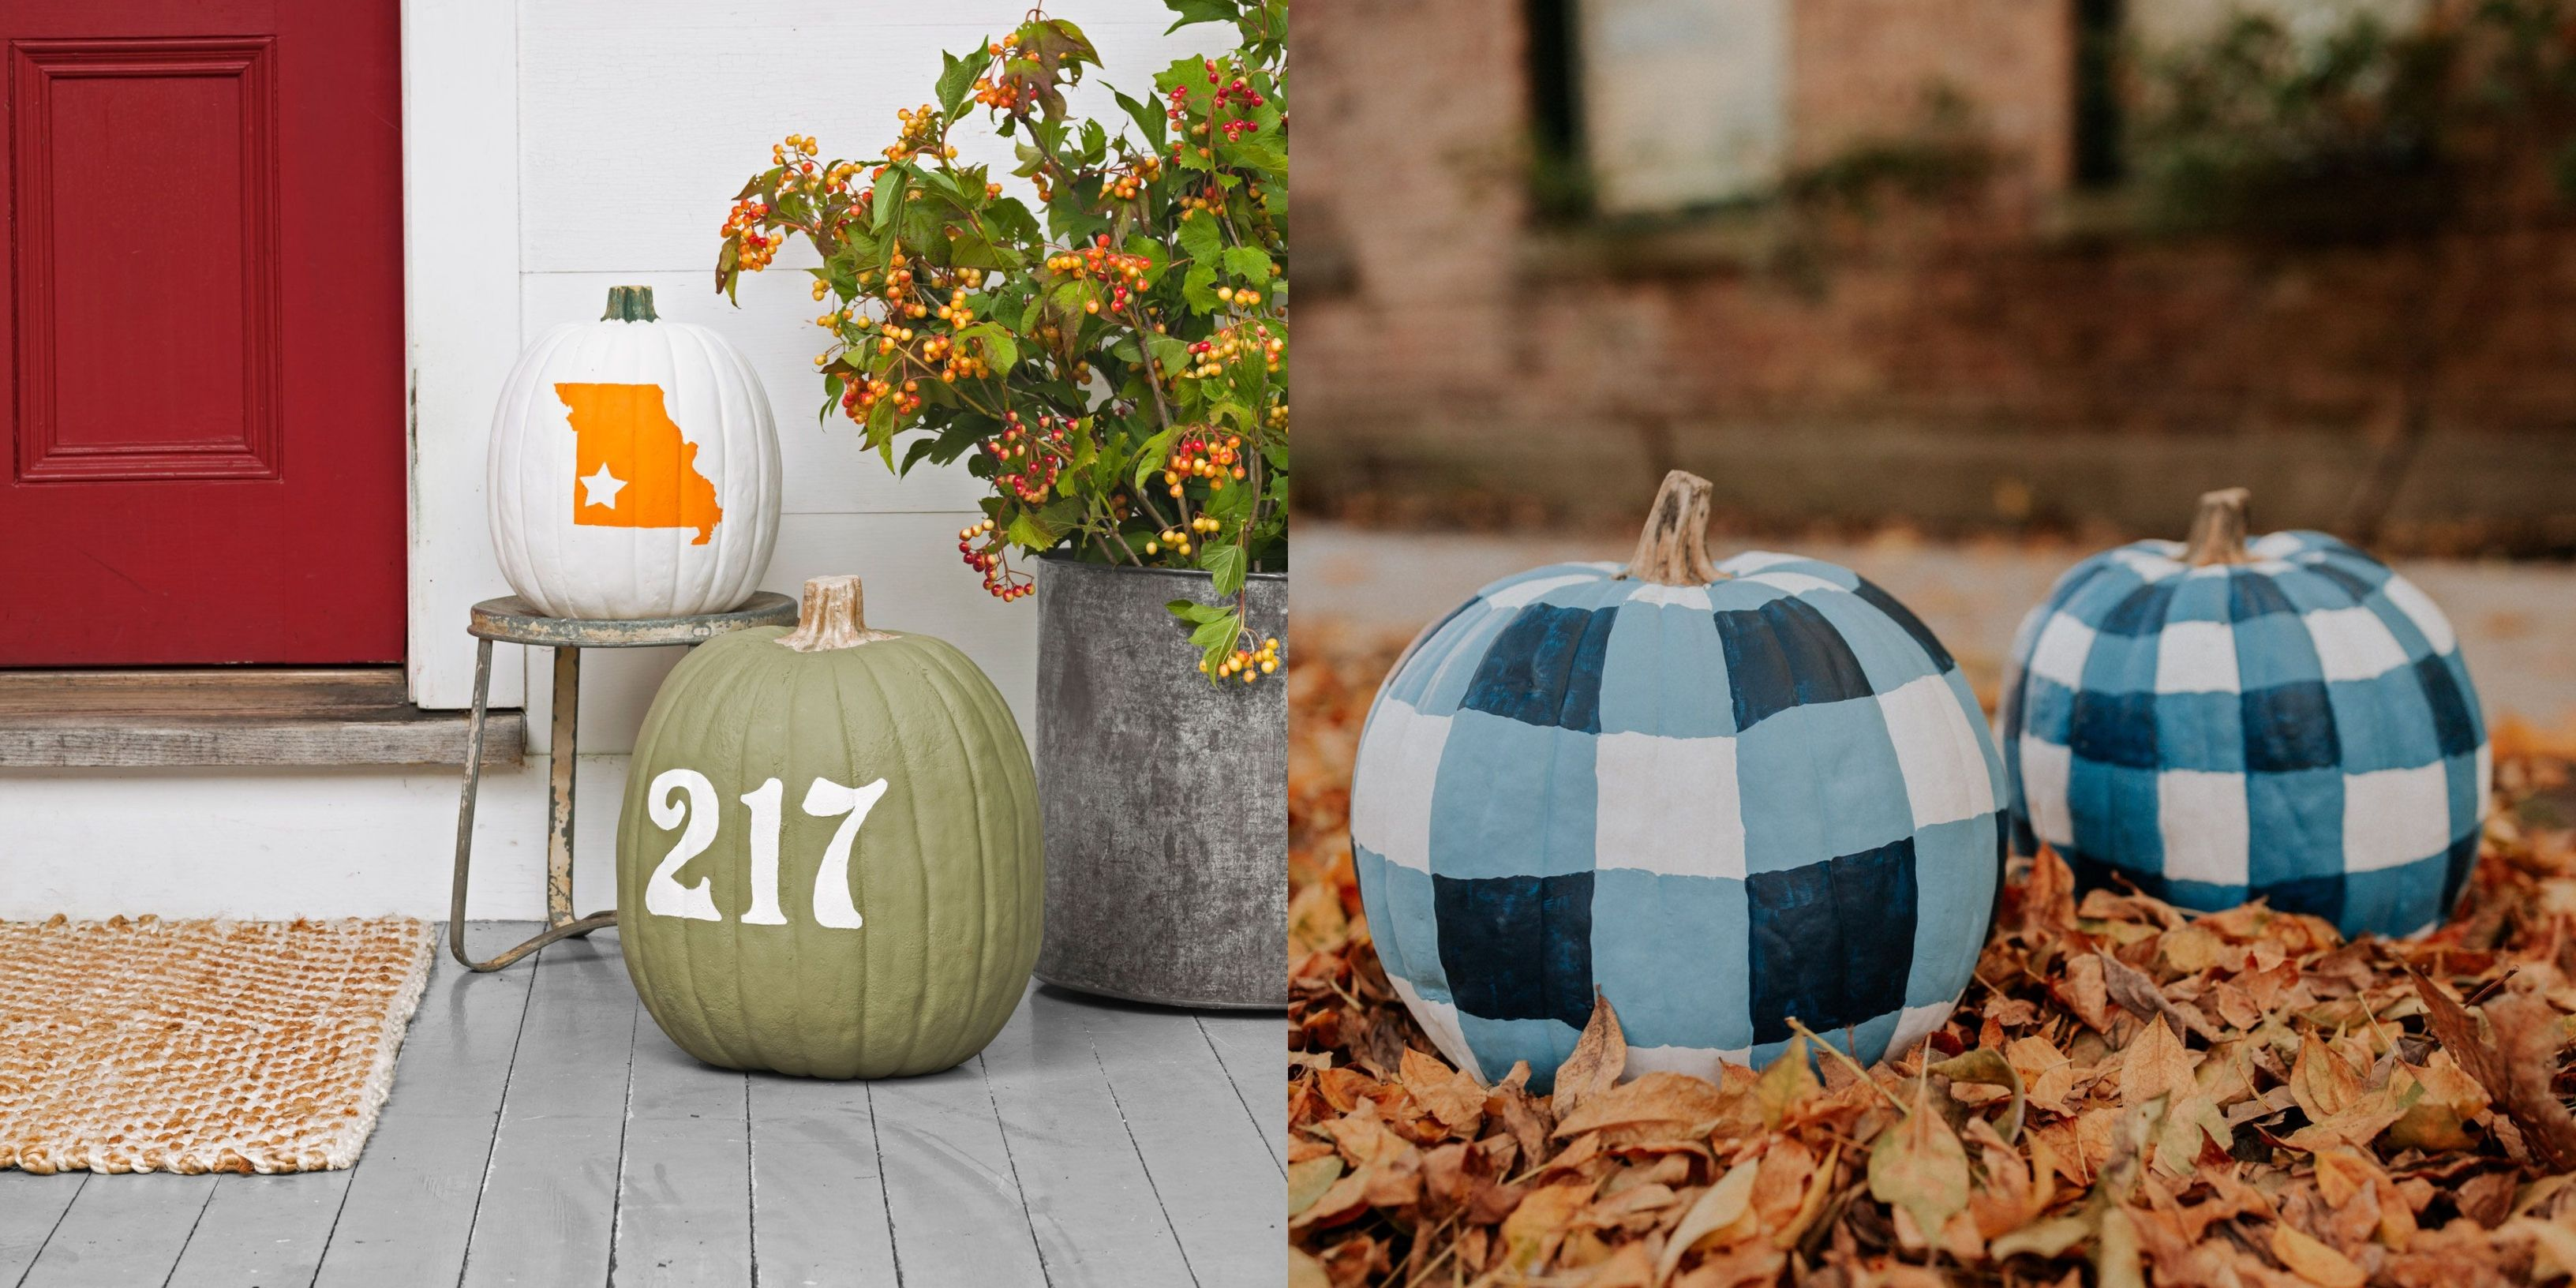 76 Painted Pumpkins For Halloween That Are So Cute, You Won't Use Carving Tools Again